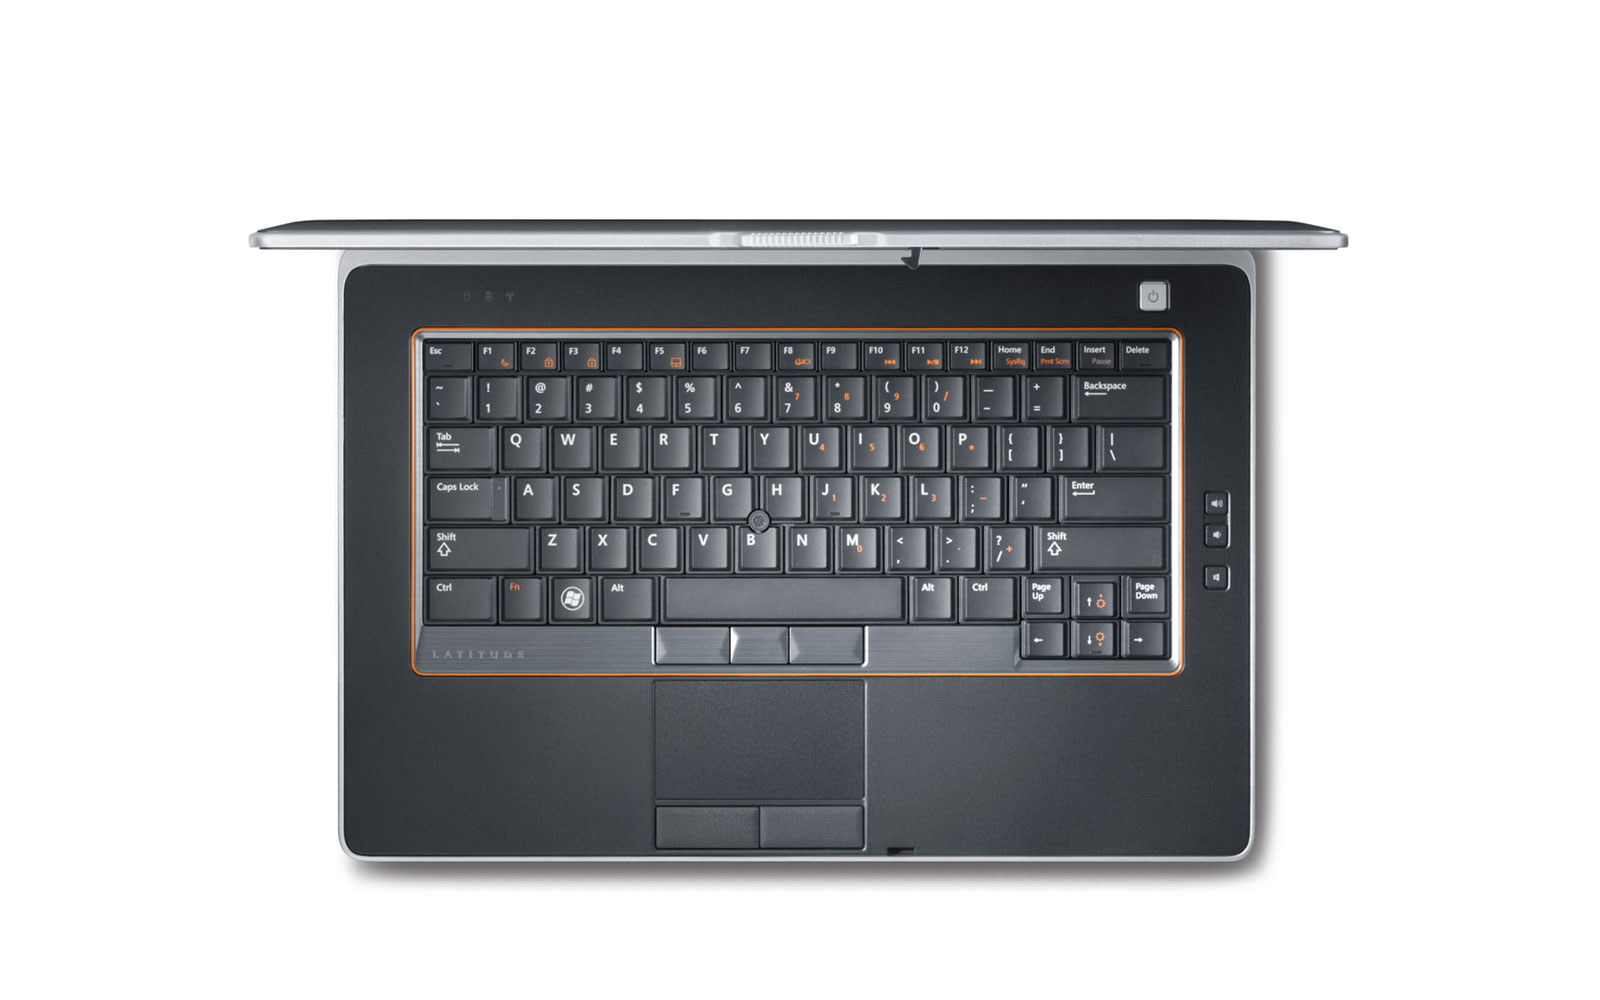 dell latitude - Laptop Computer Series